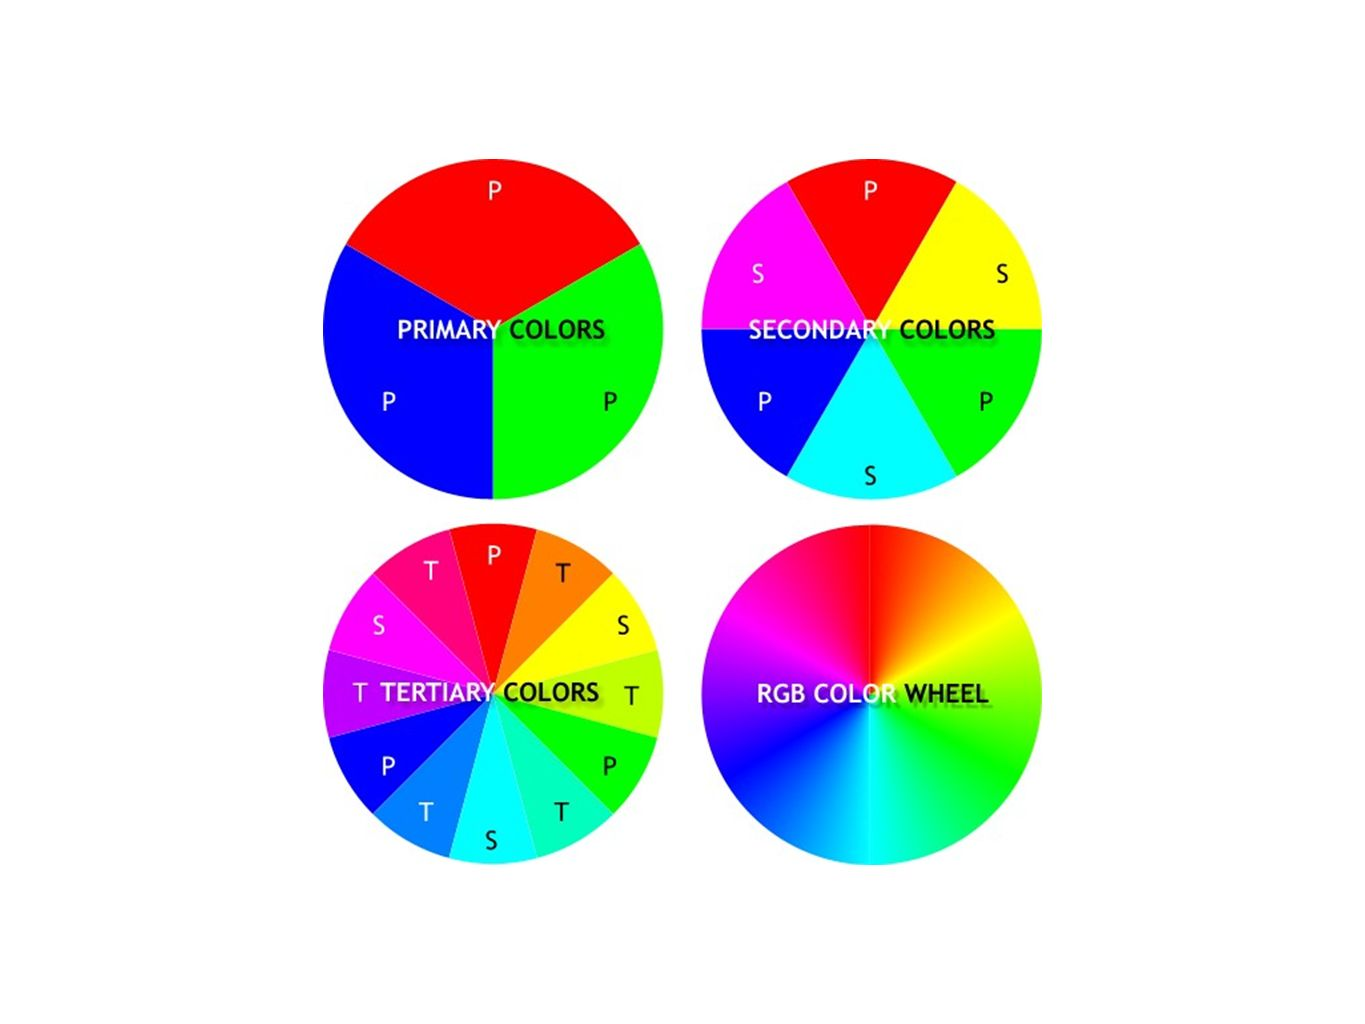 So Different Frequencies Of Color Come Together To Make The Colors That We See All